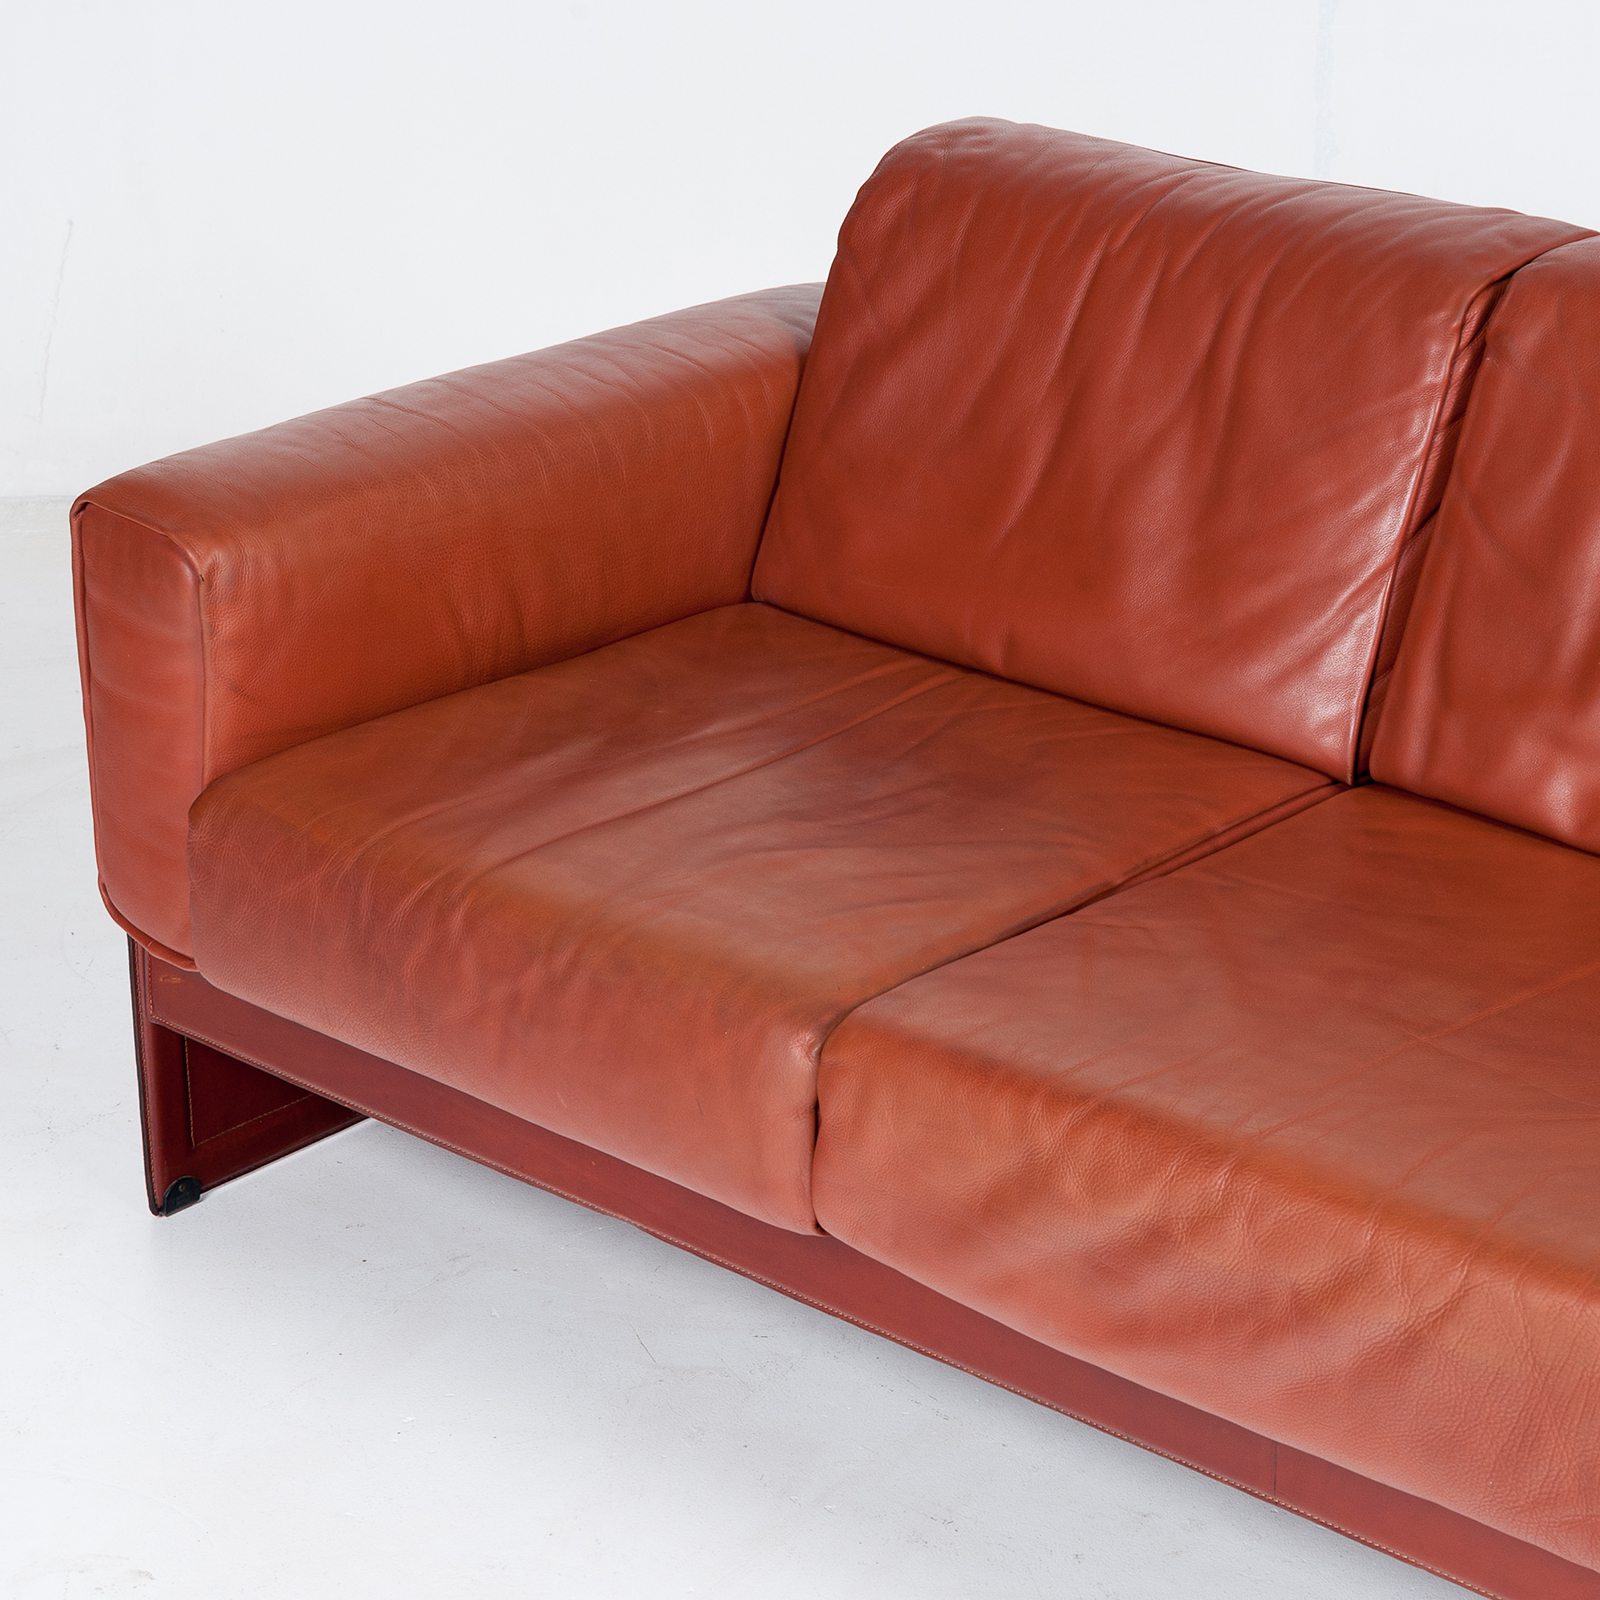 3 Seat Sofa In Leather By Matteo Grassi, 1980s, Italy54